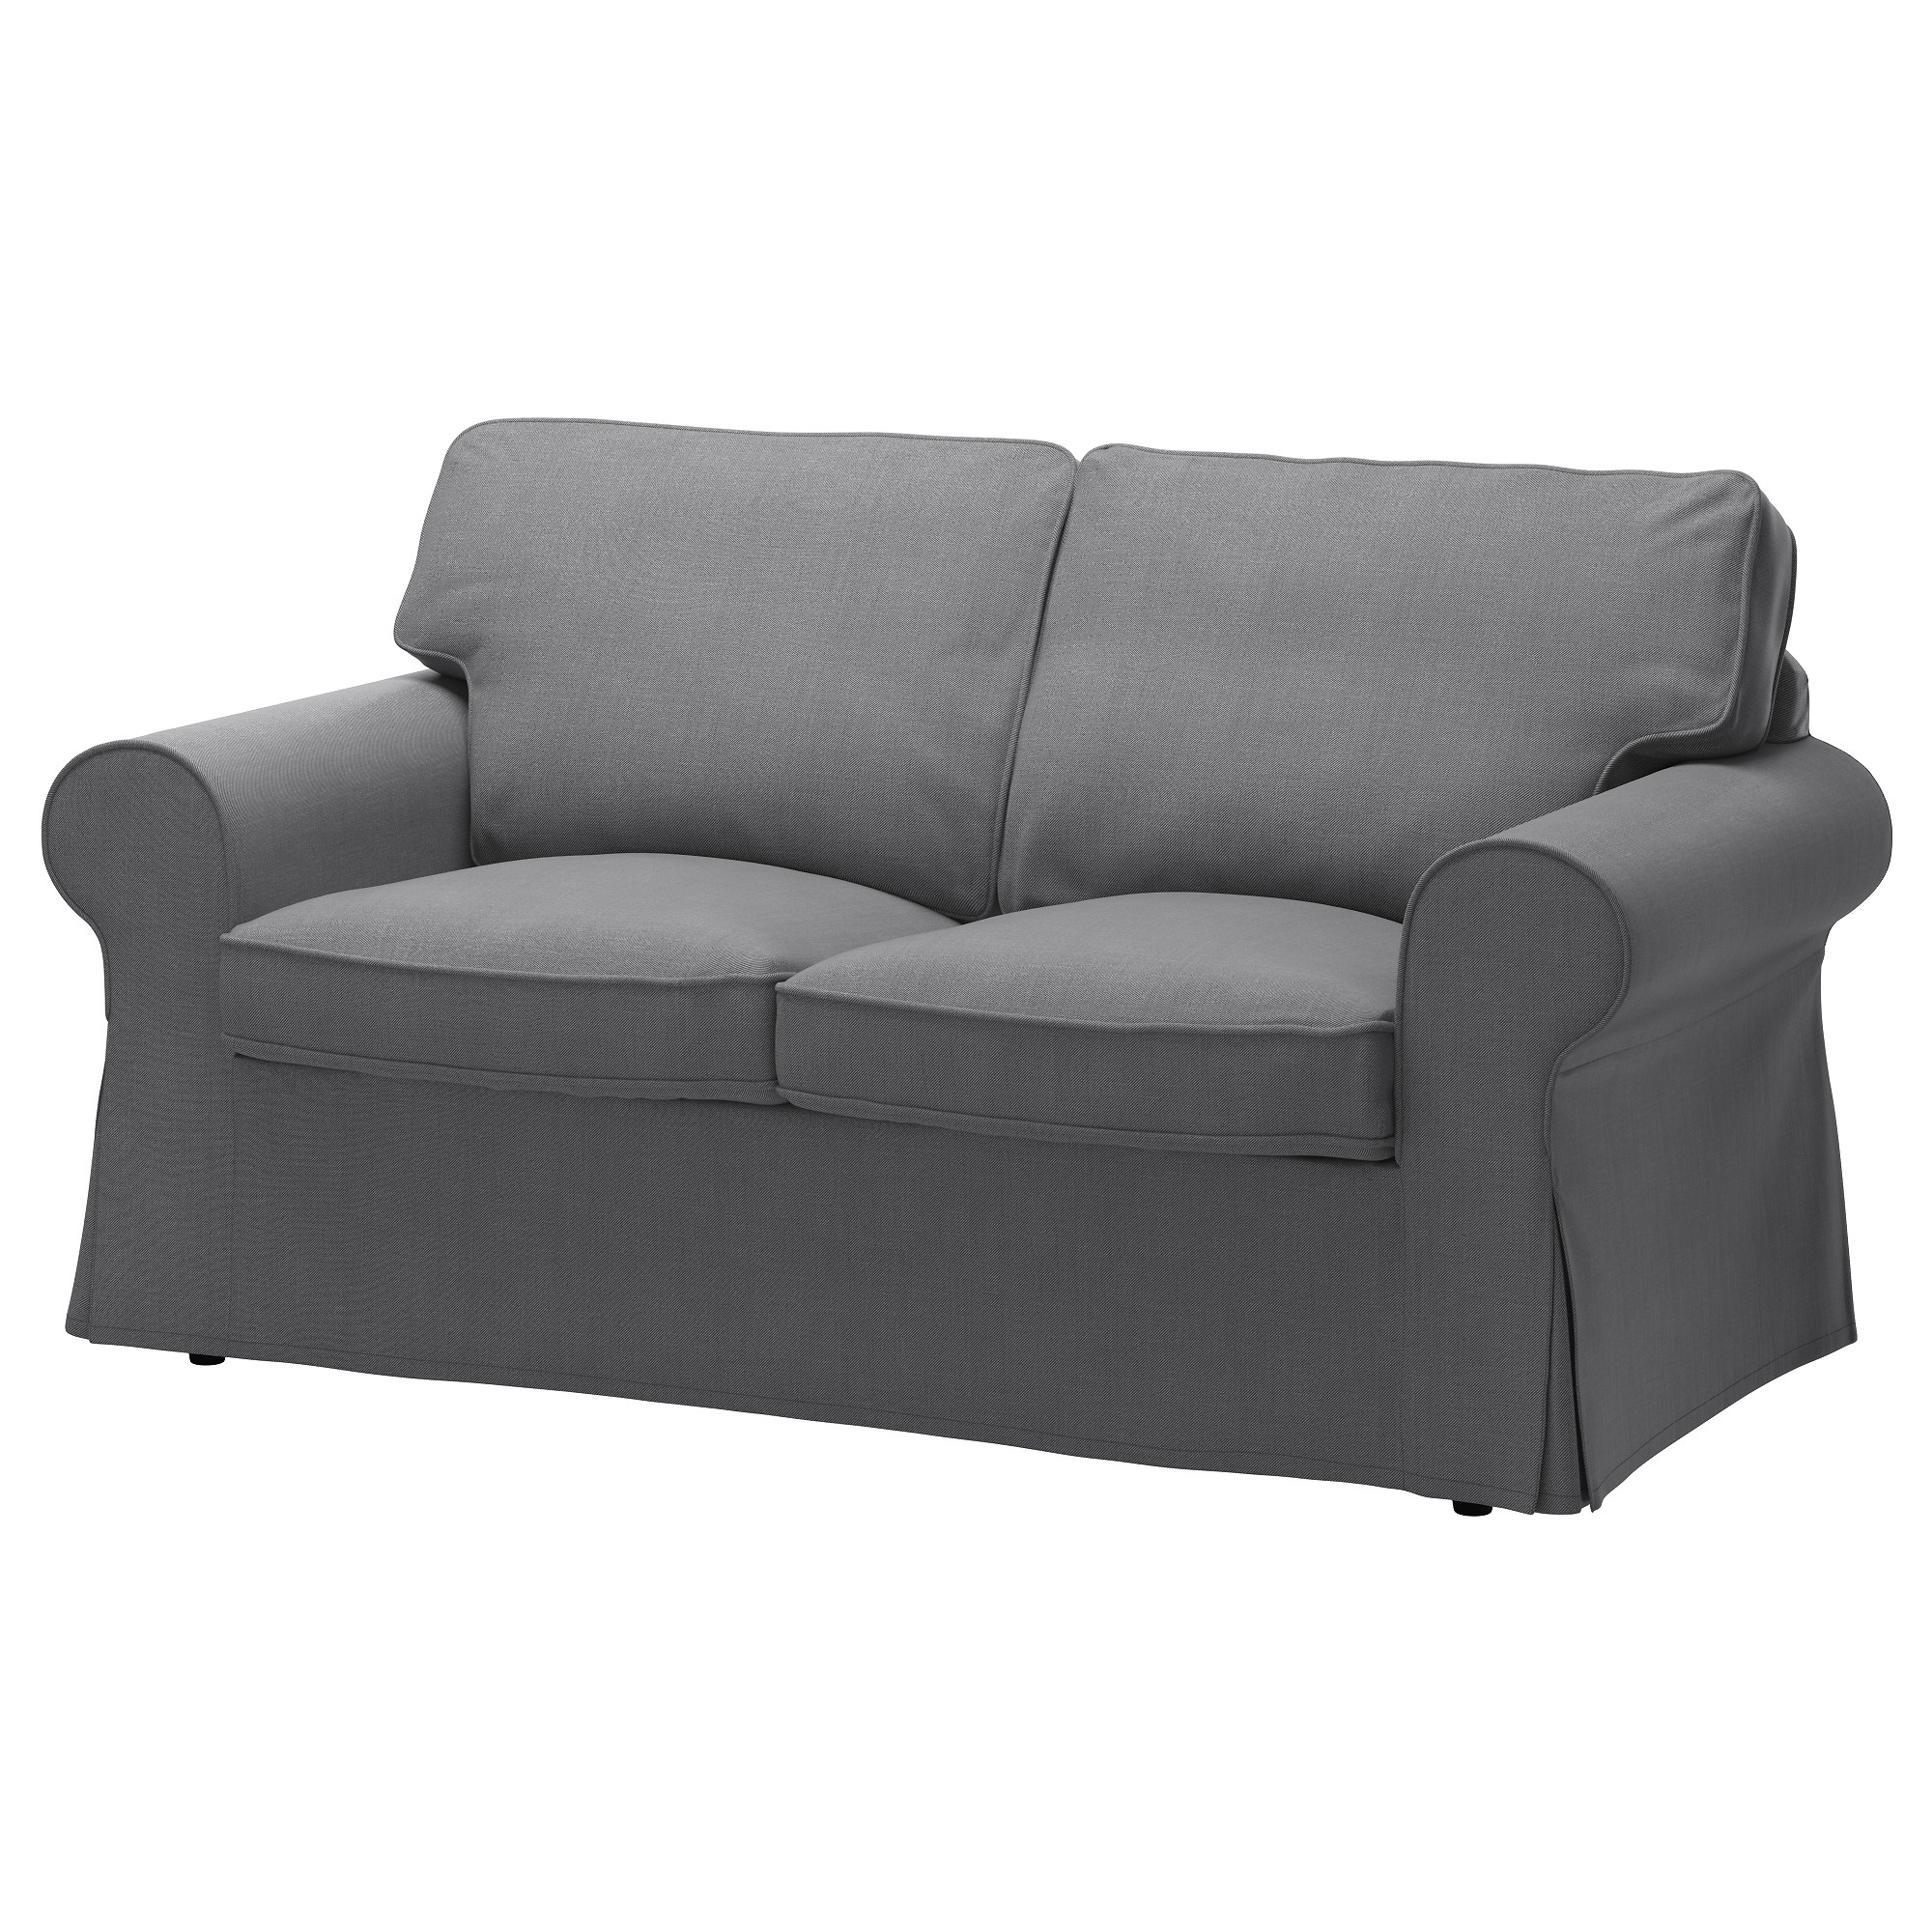 Ektorp – Ikea Regarding Sofas With Removable Cover (View 9 of 10)